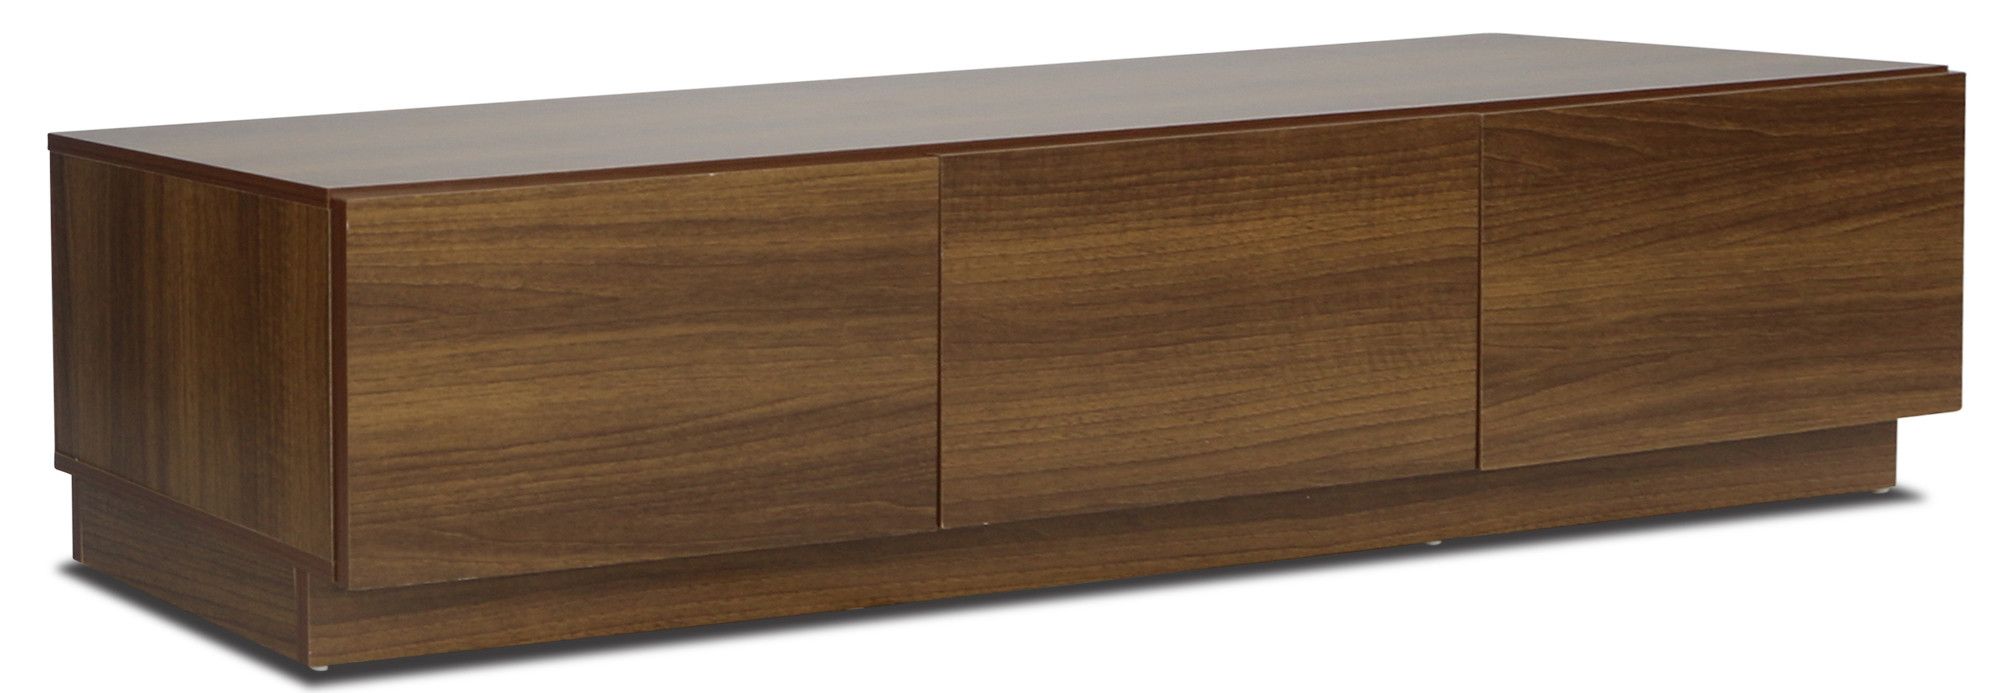 Naeva Tv Cabinet In Walnut Furniture Home Decor Fortytwo